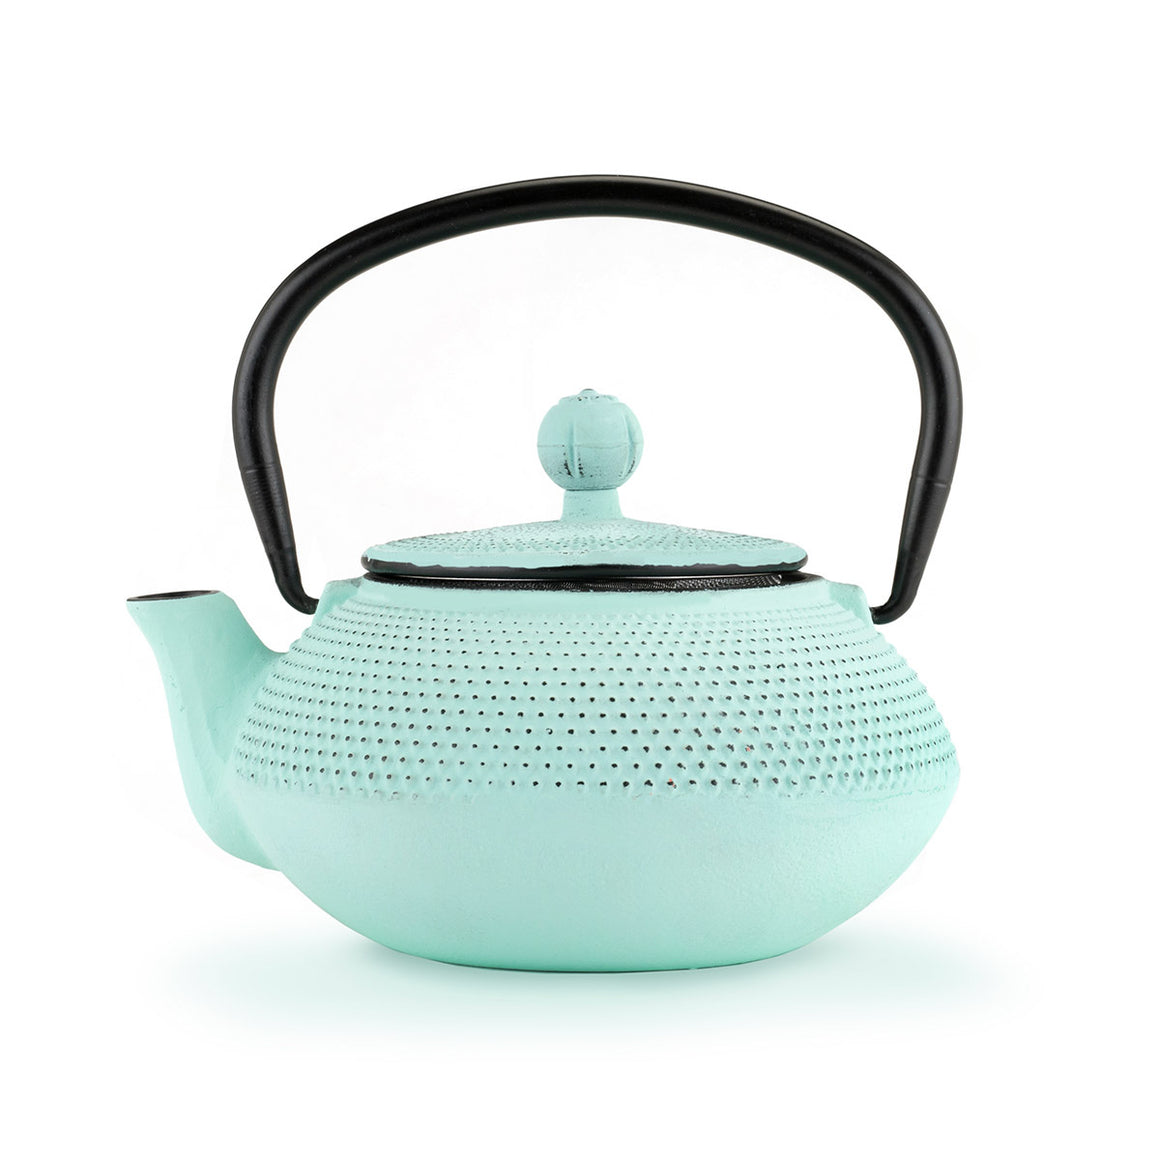 Miko Light Blue Cast Iron Teapot